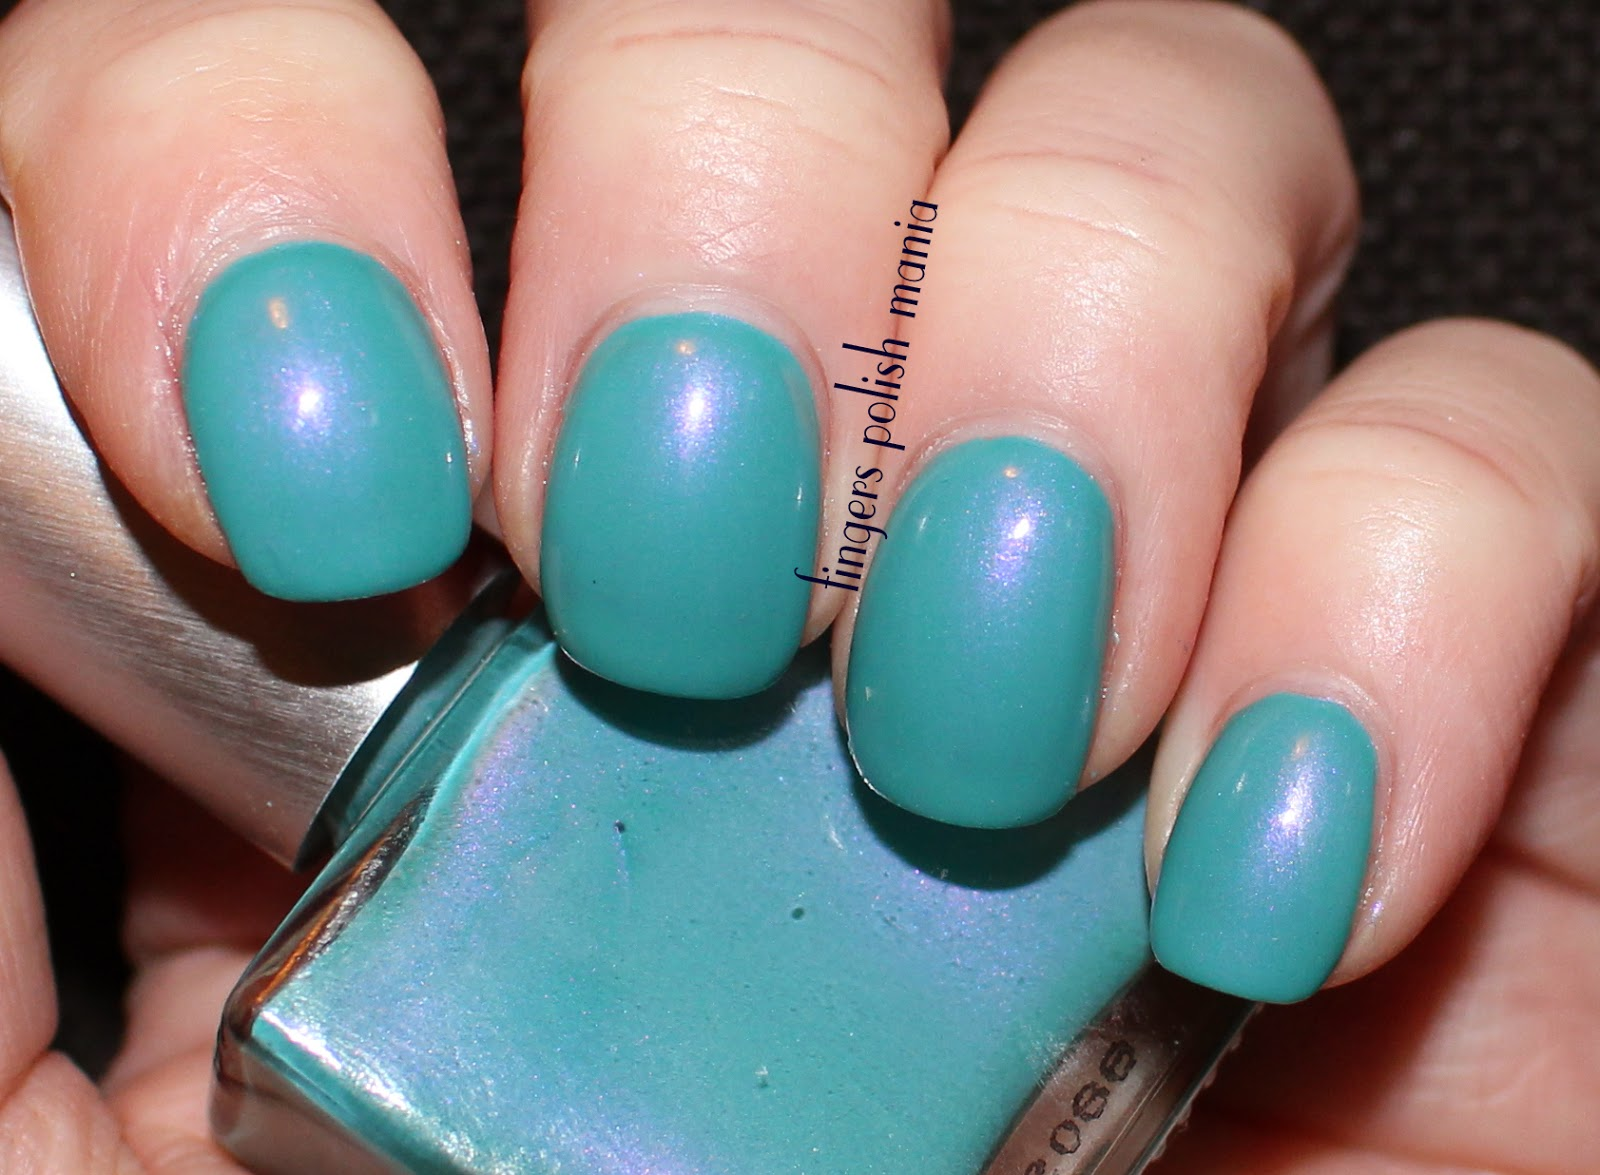 fingers polish mania: March 2015